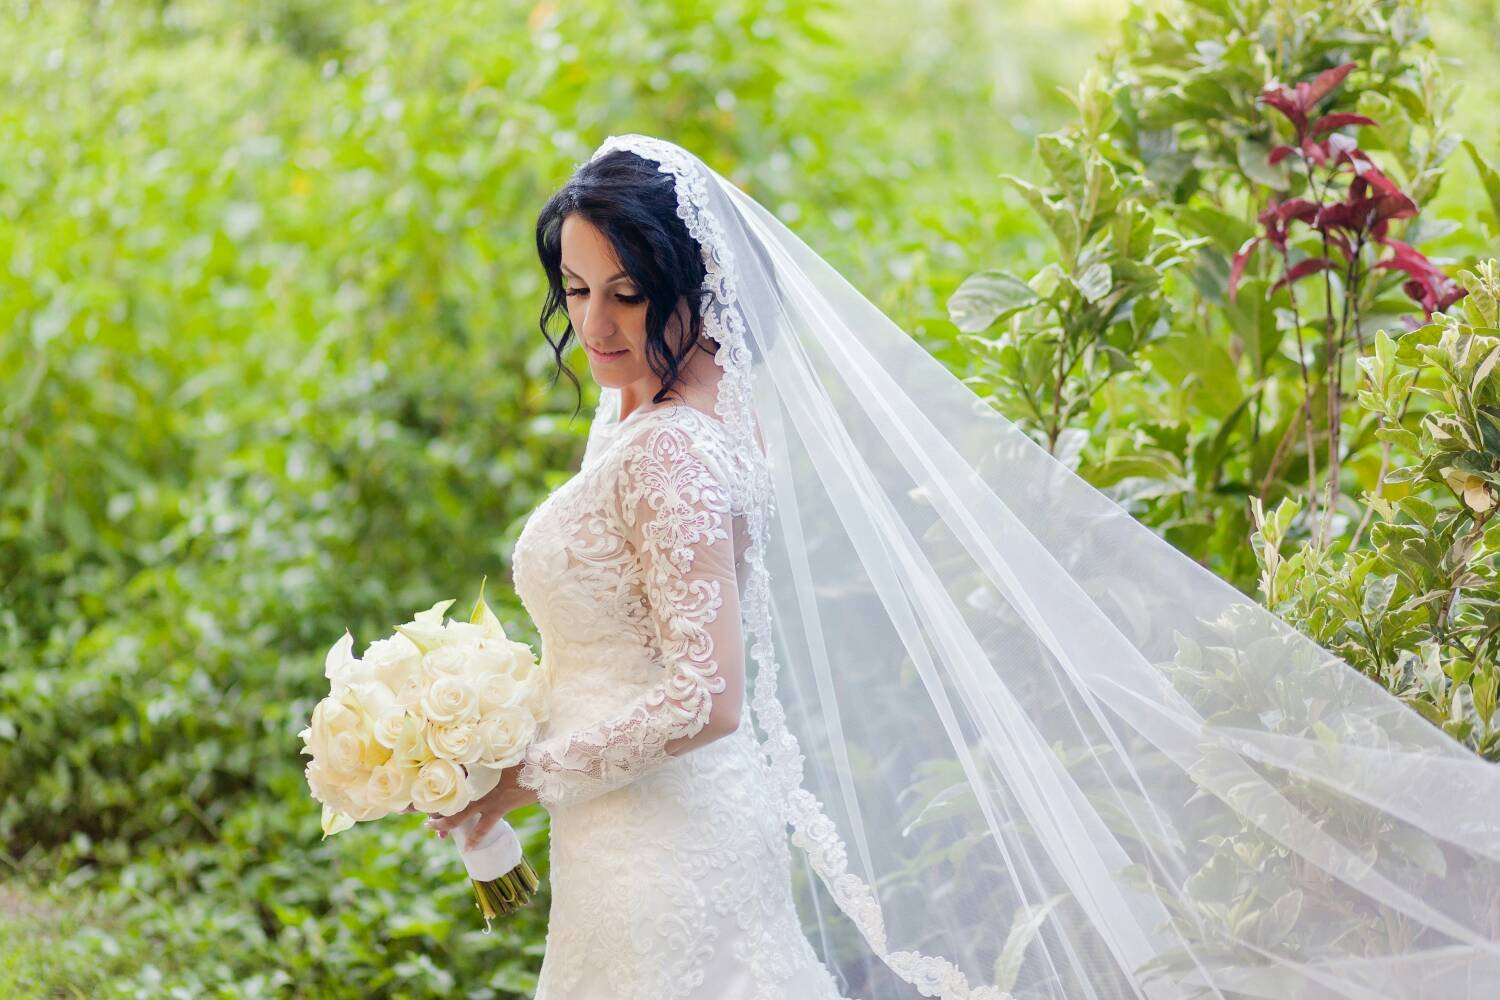 Mantilla Lace Wedding Veil | Beaded Lace